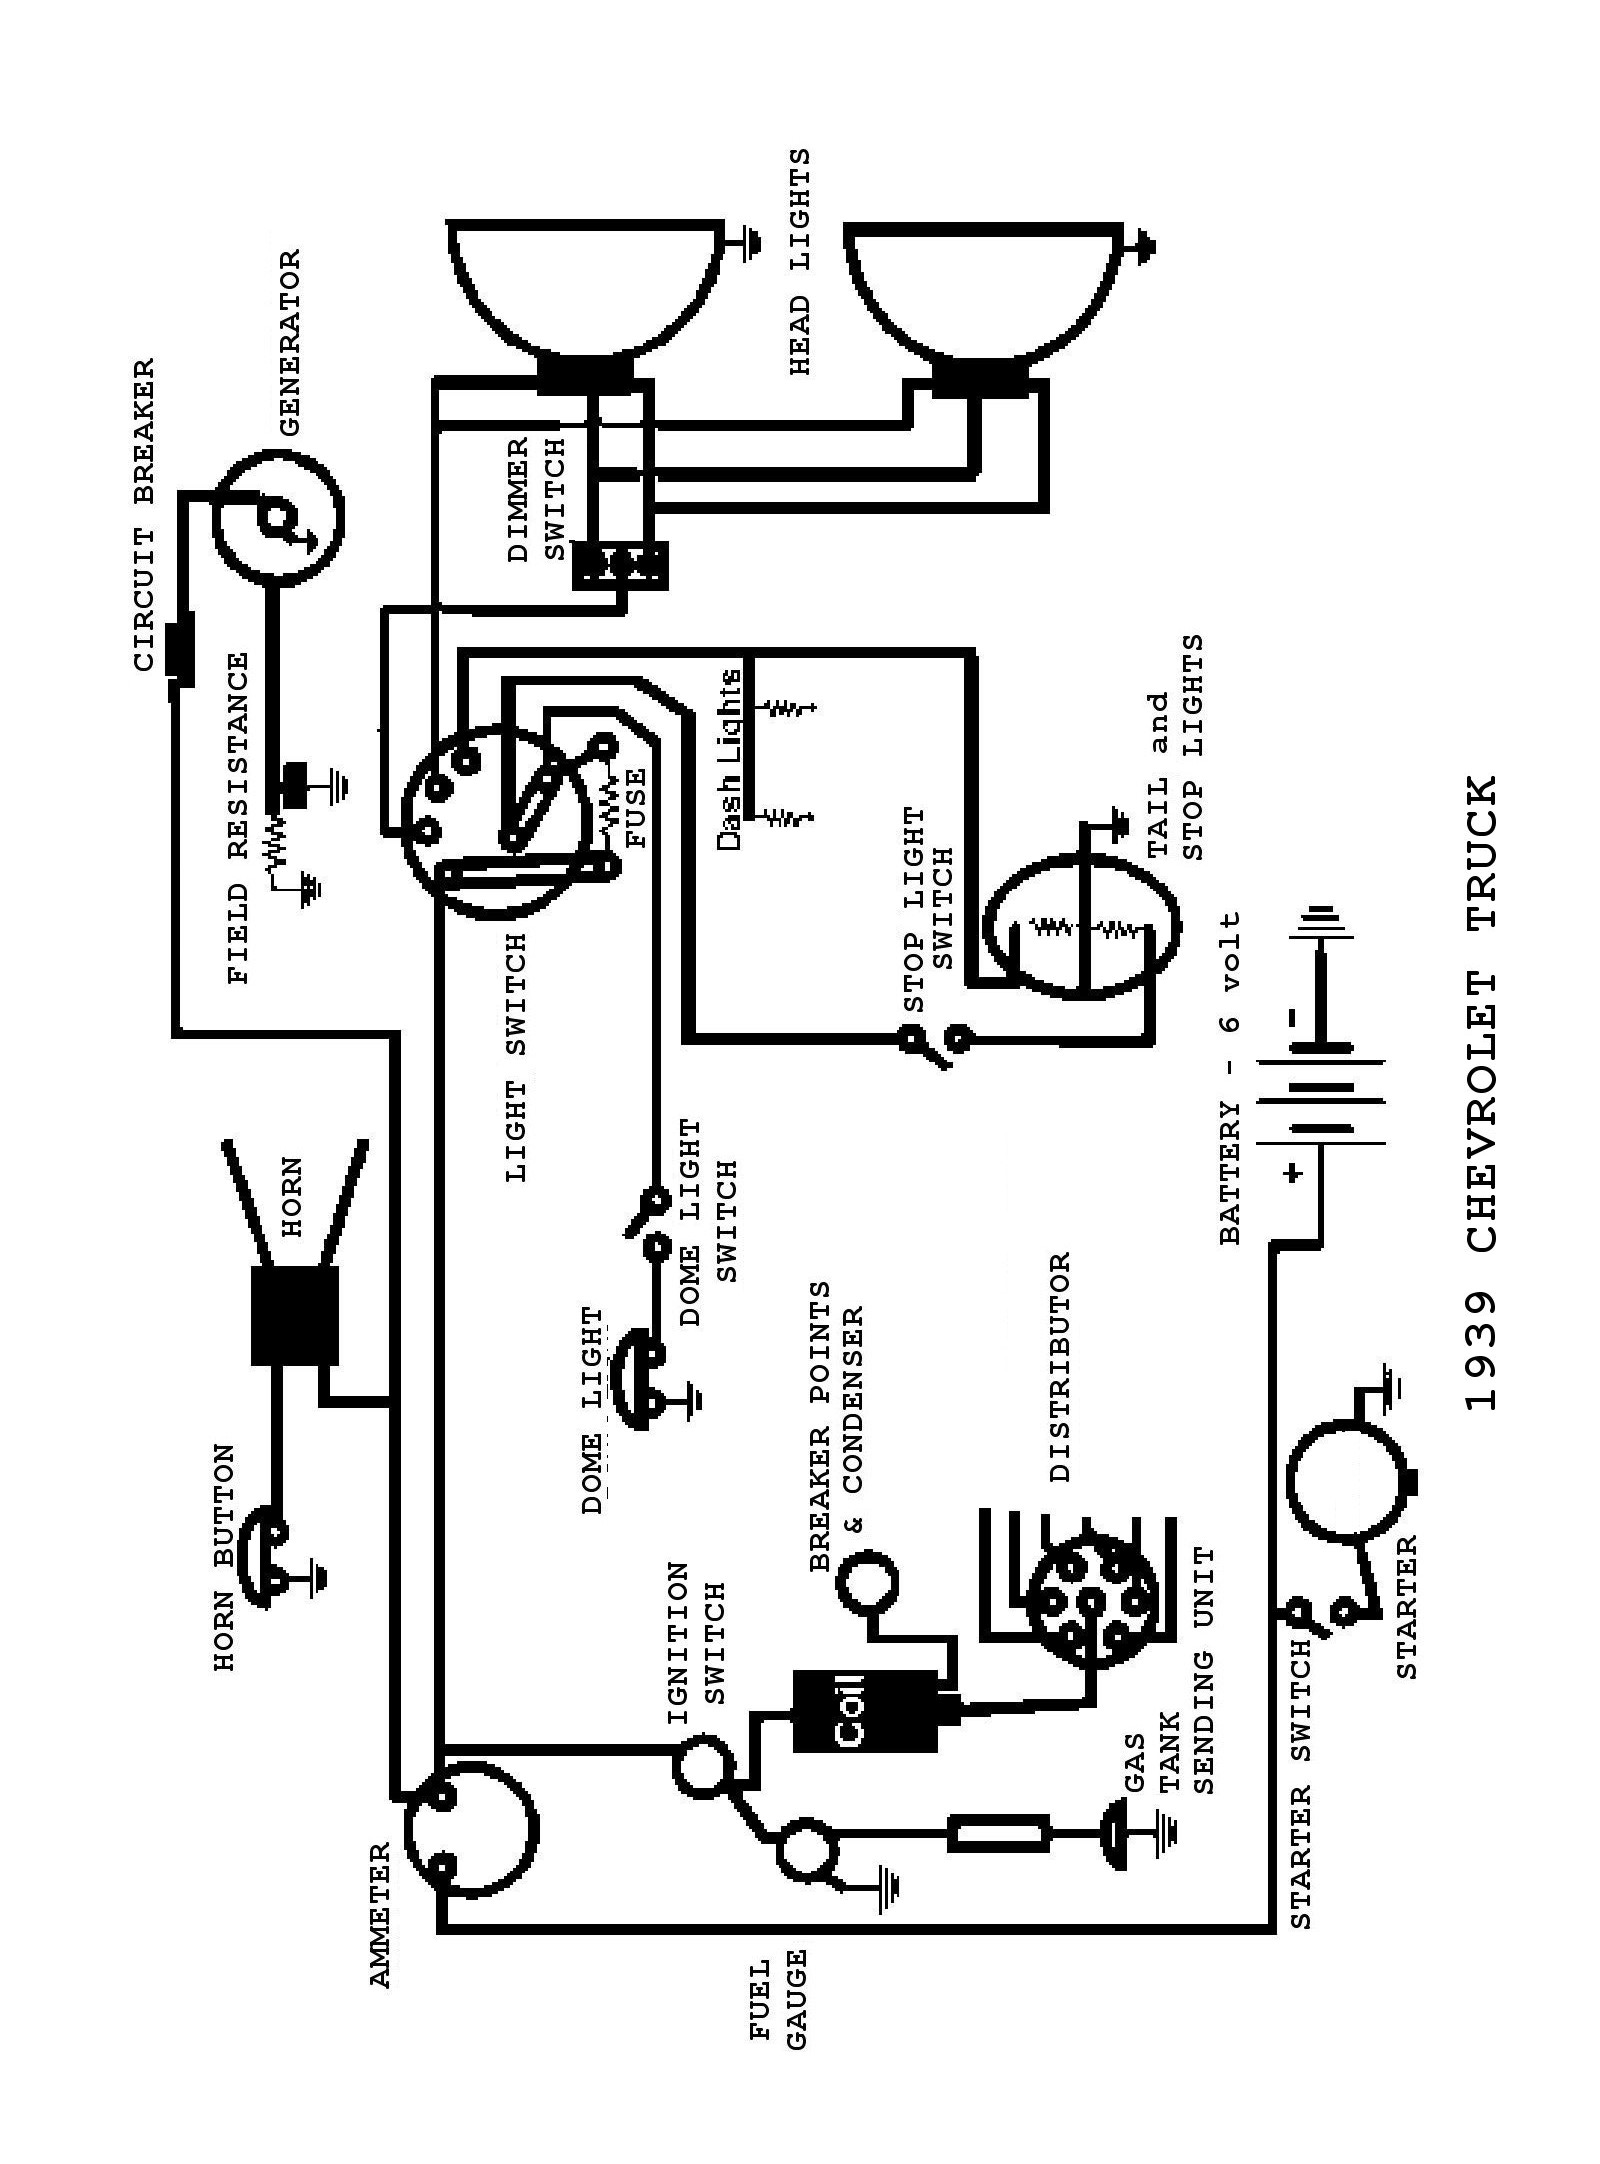 ih tractor wiring diagram schematic